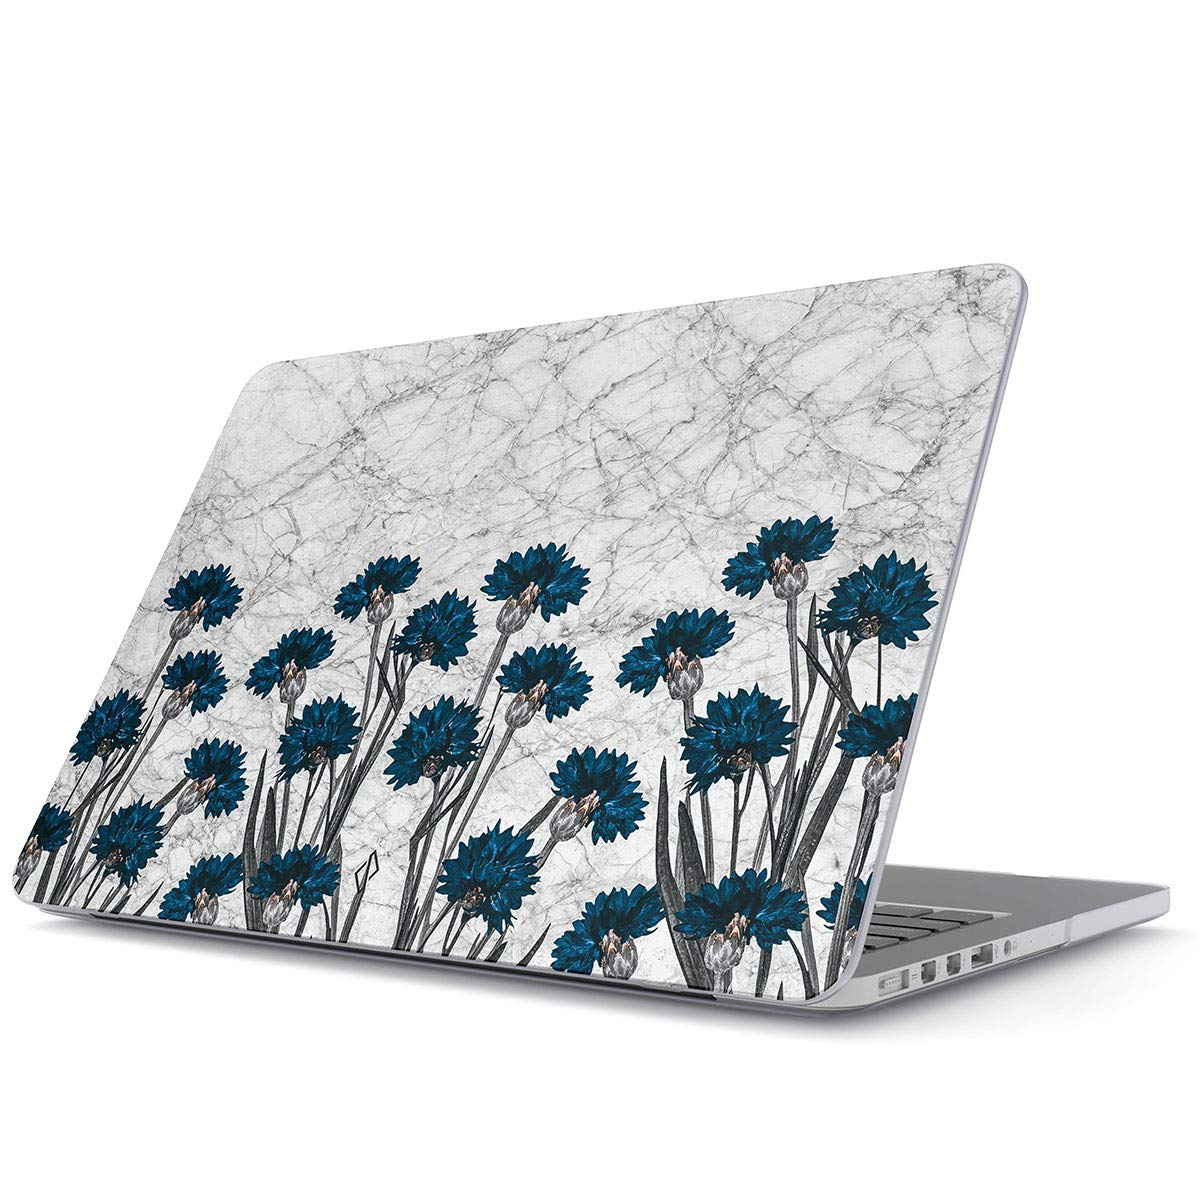 BURGA Hard Case Cover Compatible with MacBook Air 13 inch Case Release 2018-2019, Model: A1932 with Retina Display and Touch ID Blue Floral White Marble